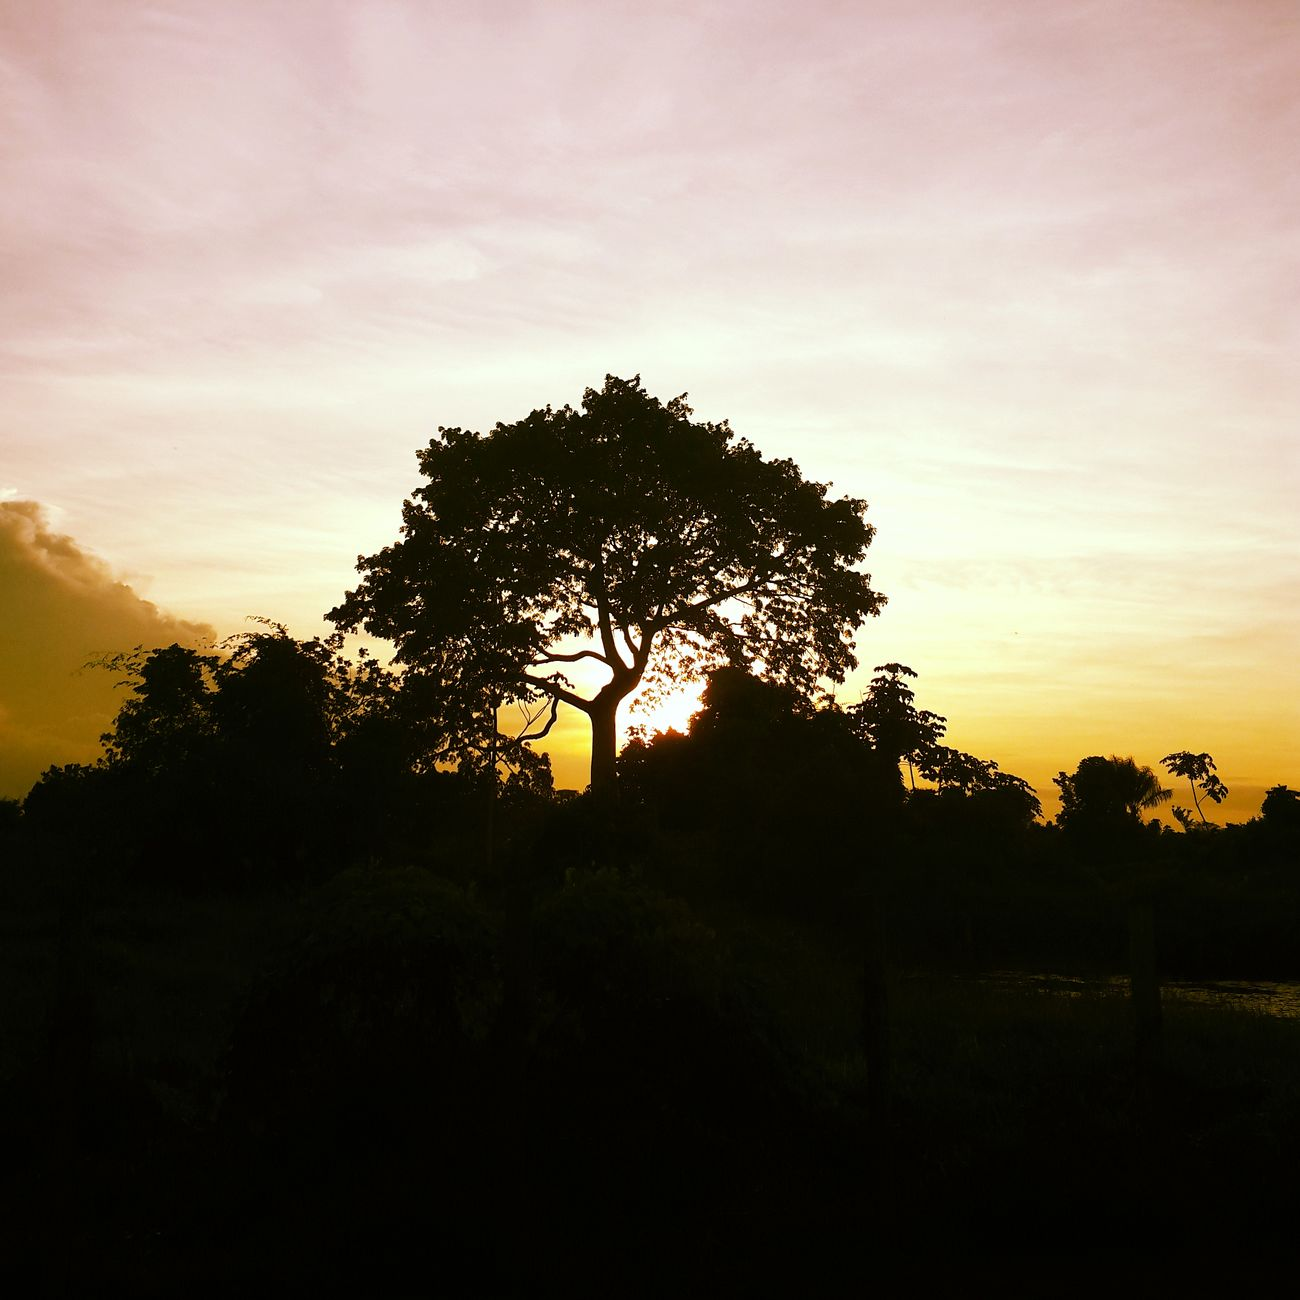 Not Africa. Just Suriname at sunset.